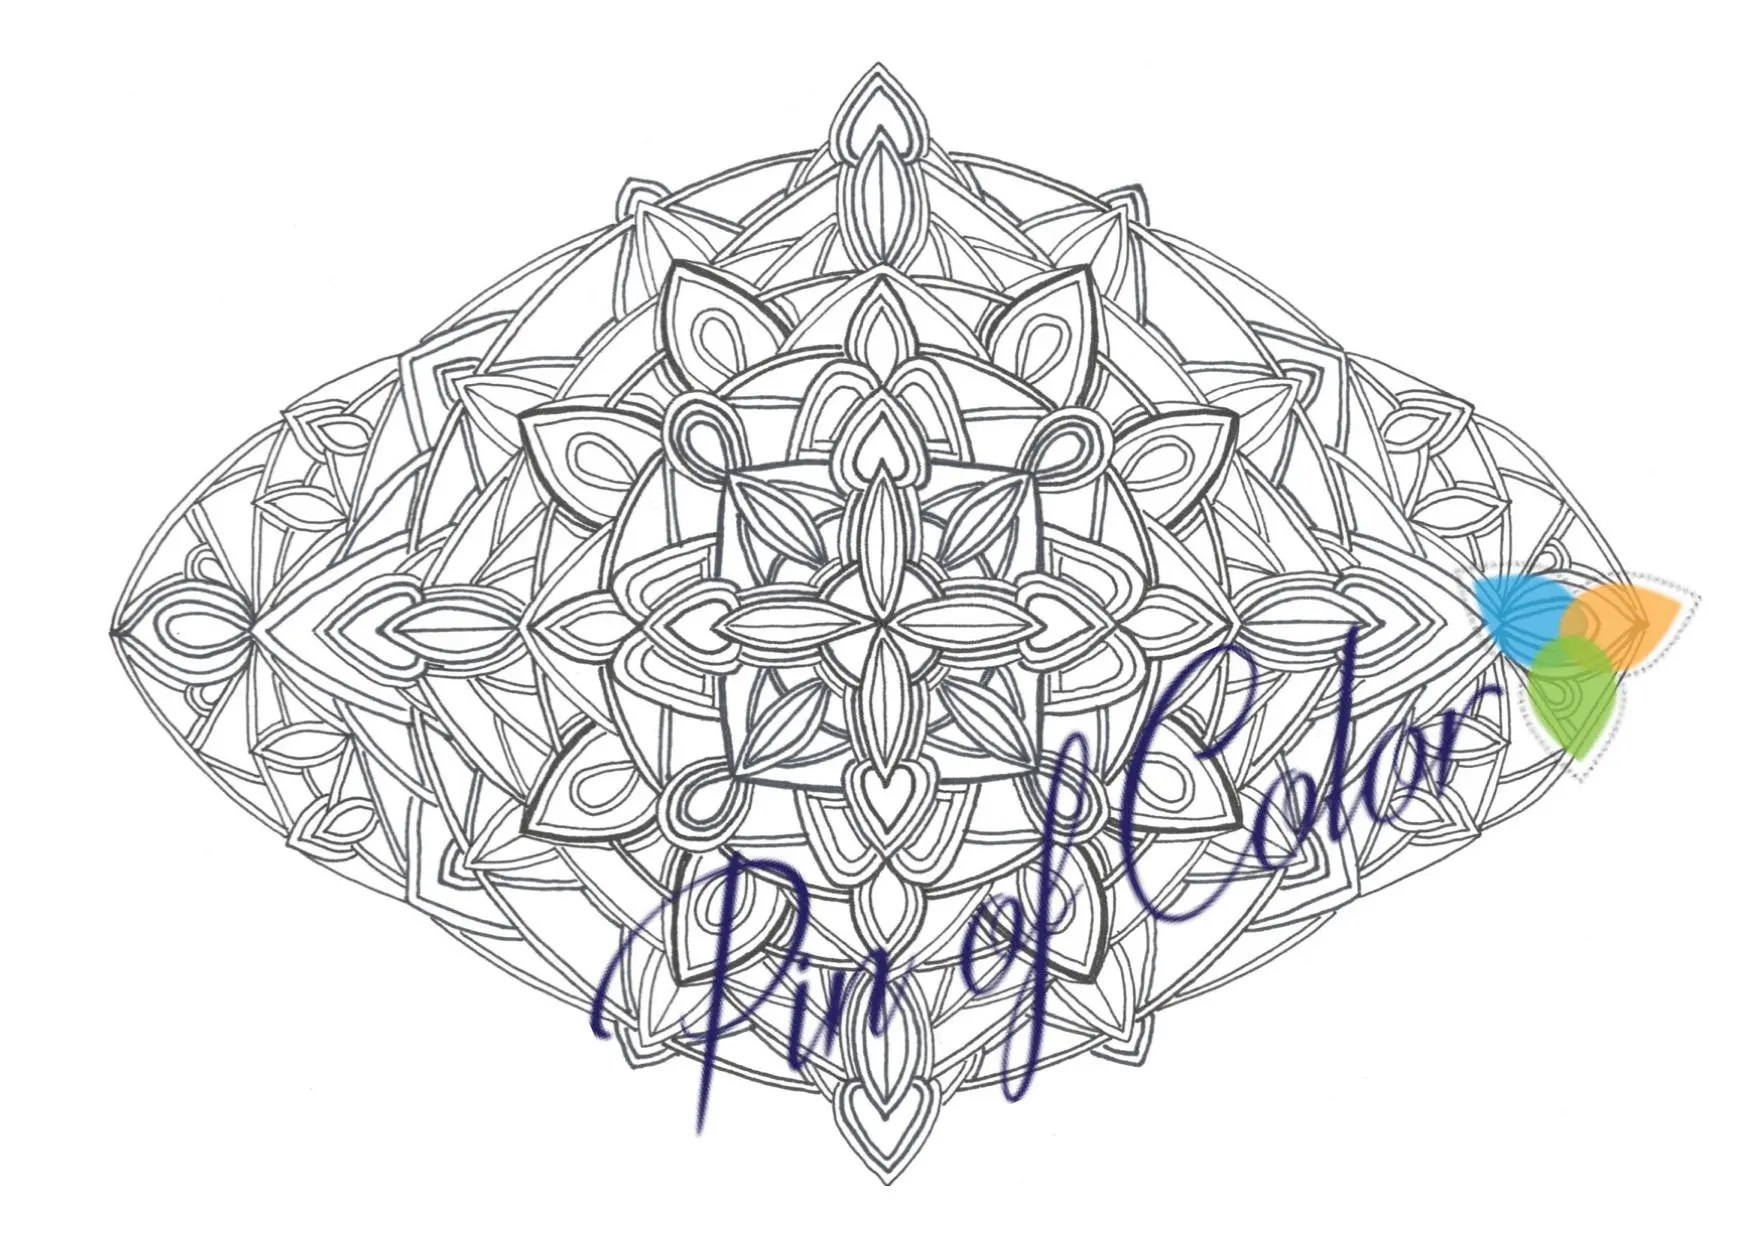 Coloring mandala page for adults. Printable Hand painted